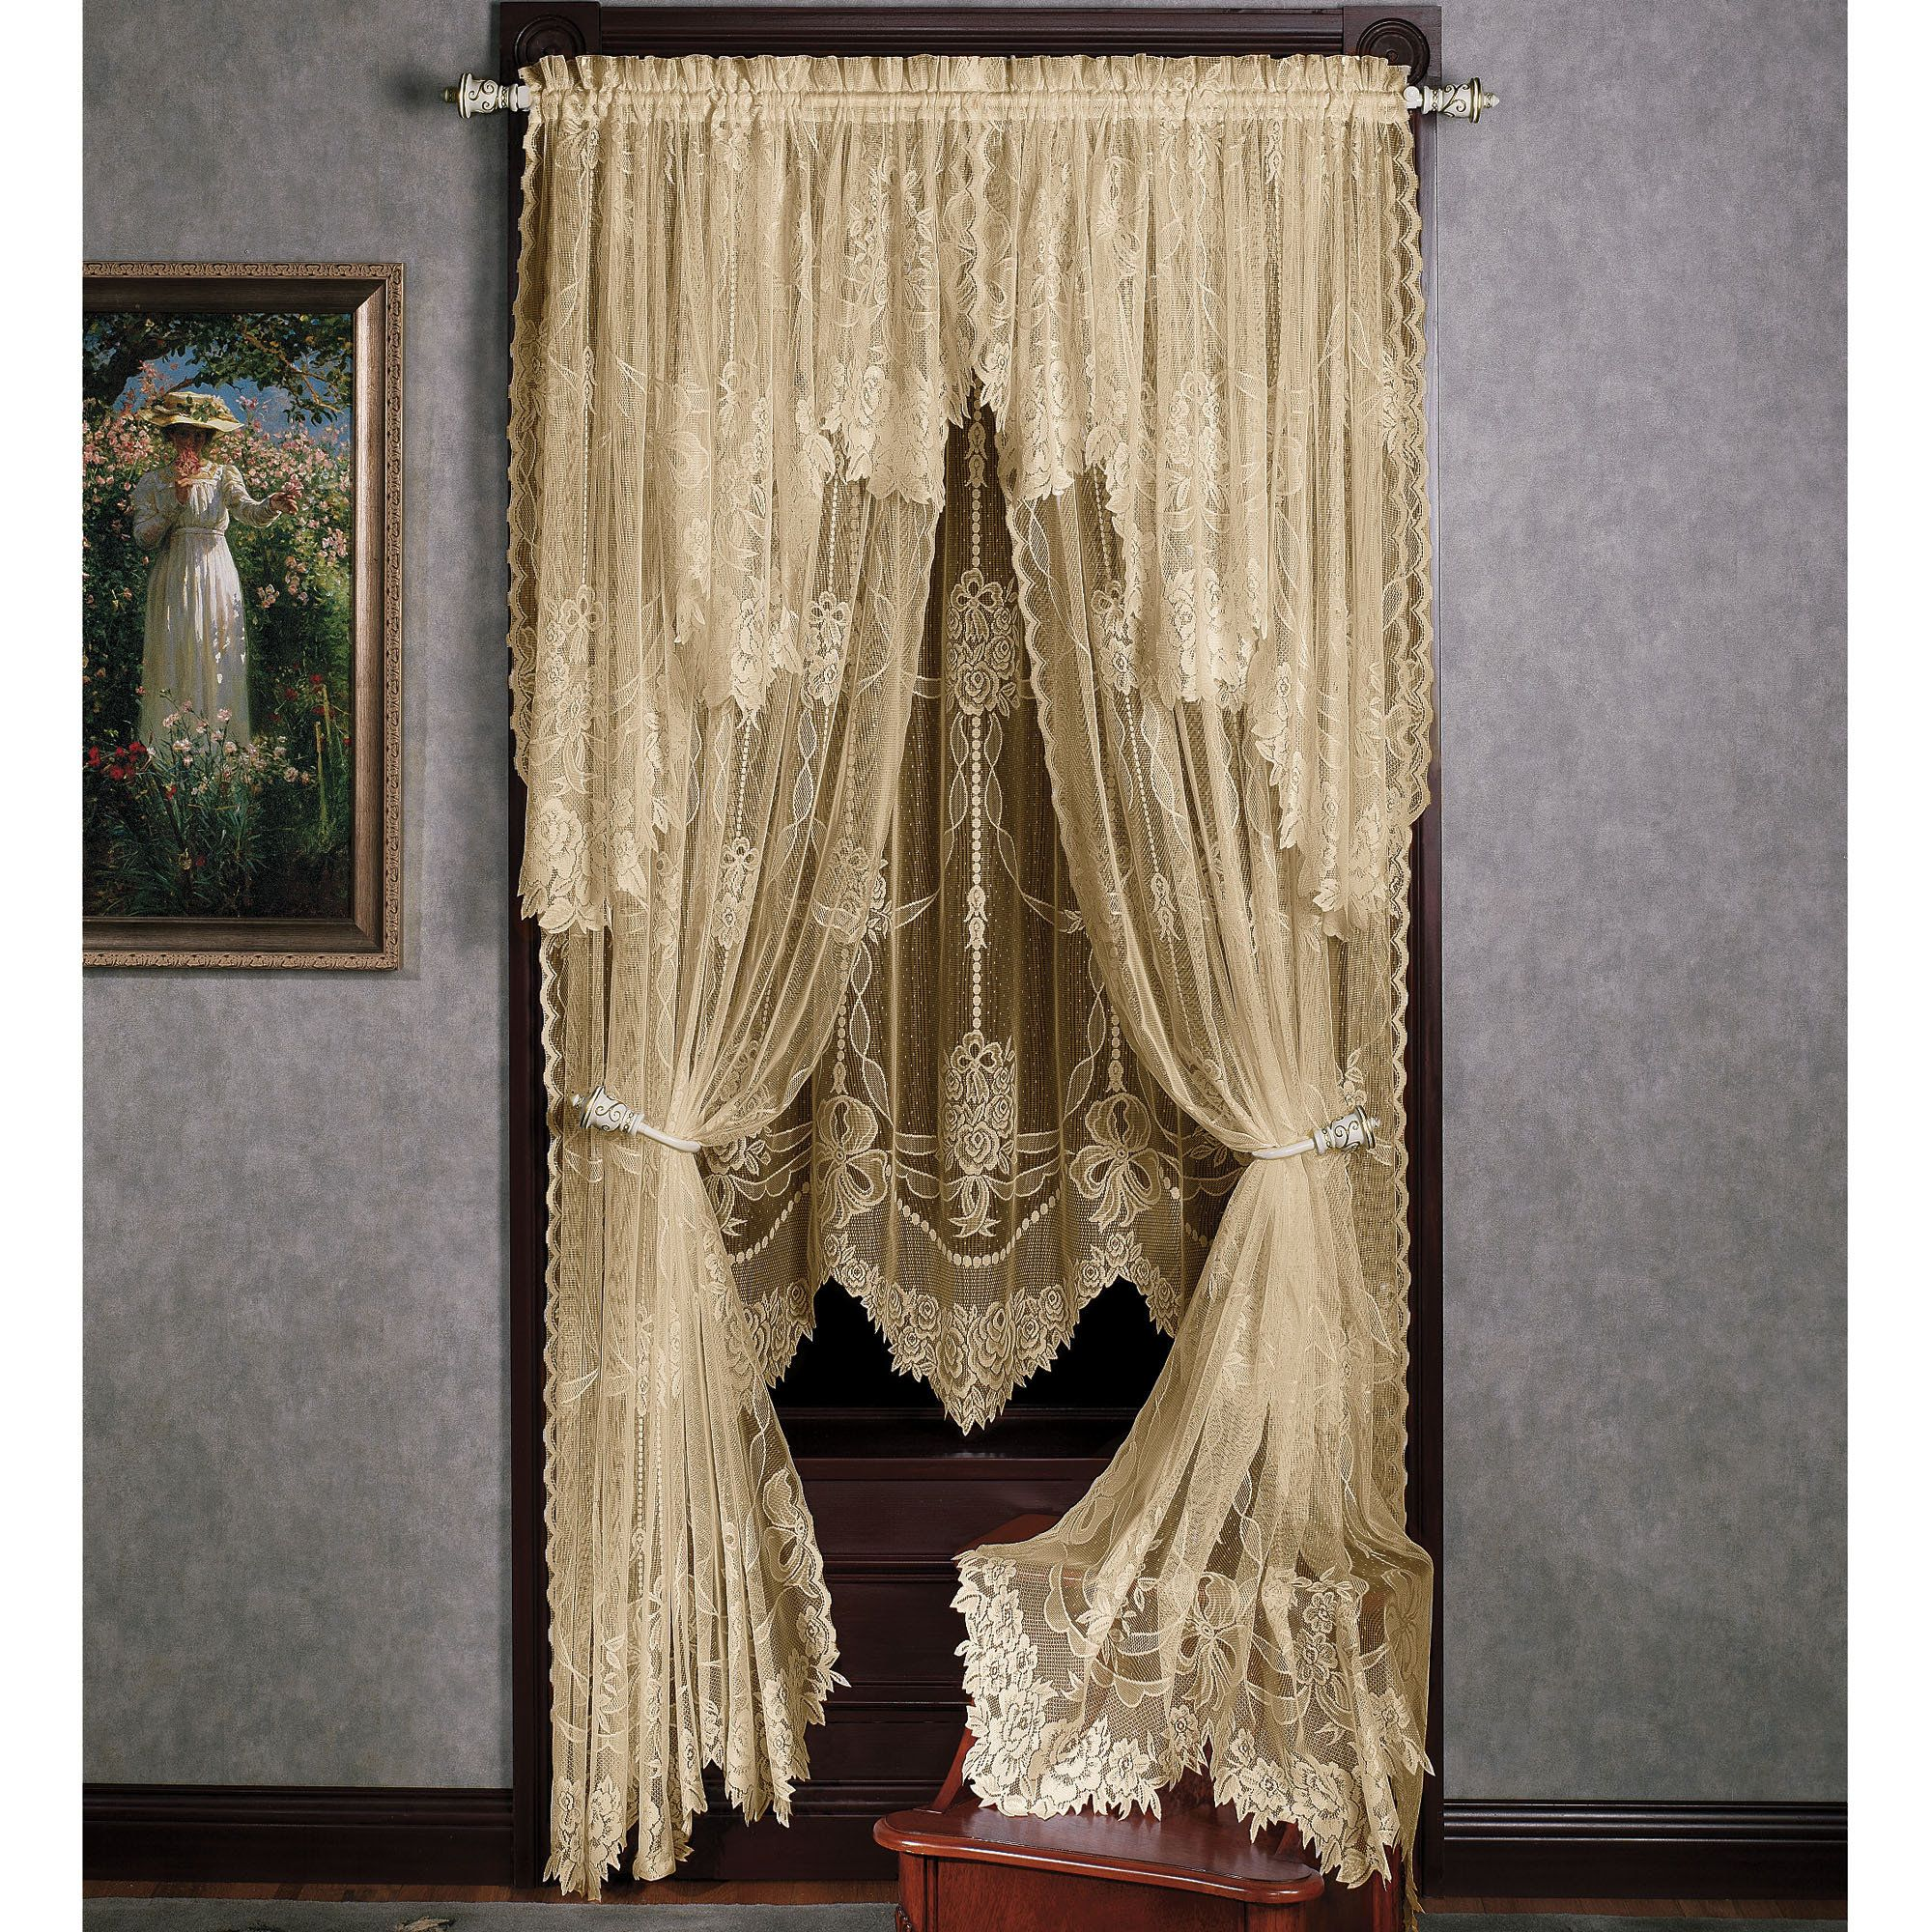 french lace kitchen curtains hardware for cabinets and drawers best 25+ victorian window treatments ideas on pinterest ...